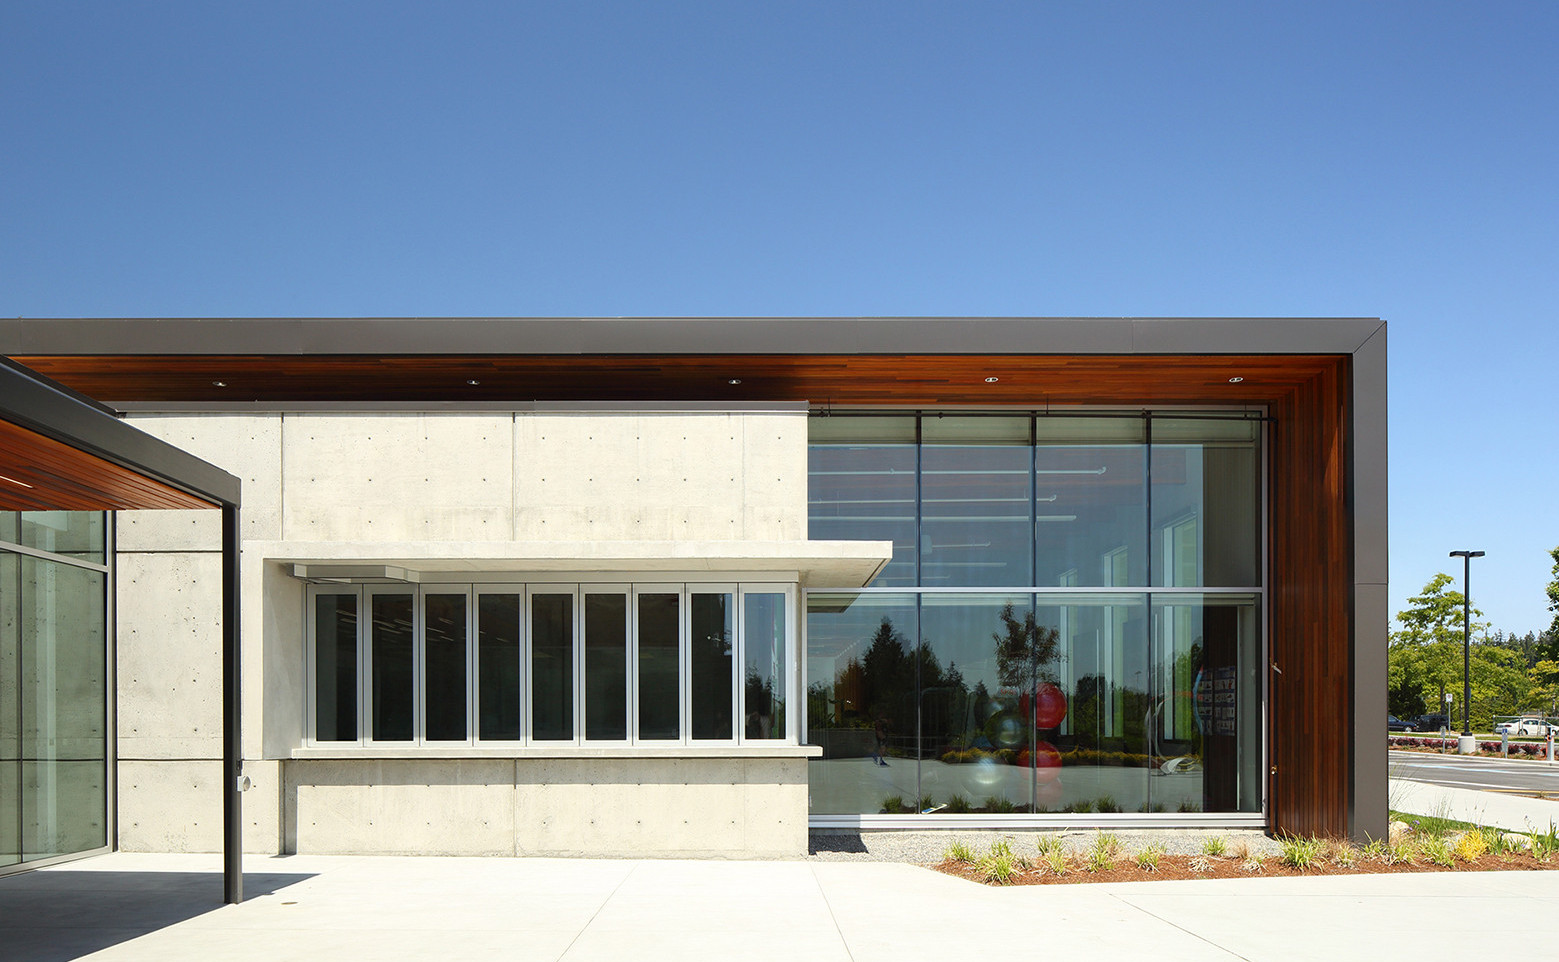 South Surrey Recreation + Arts Centre | Taylor Kurtz